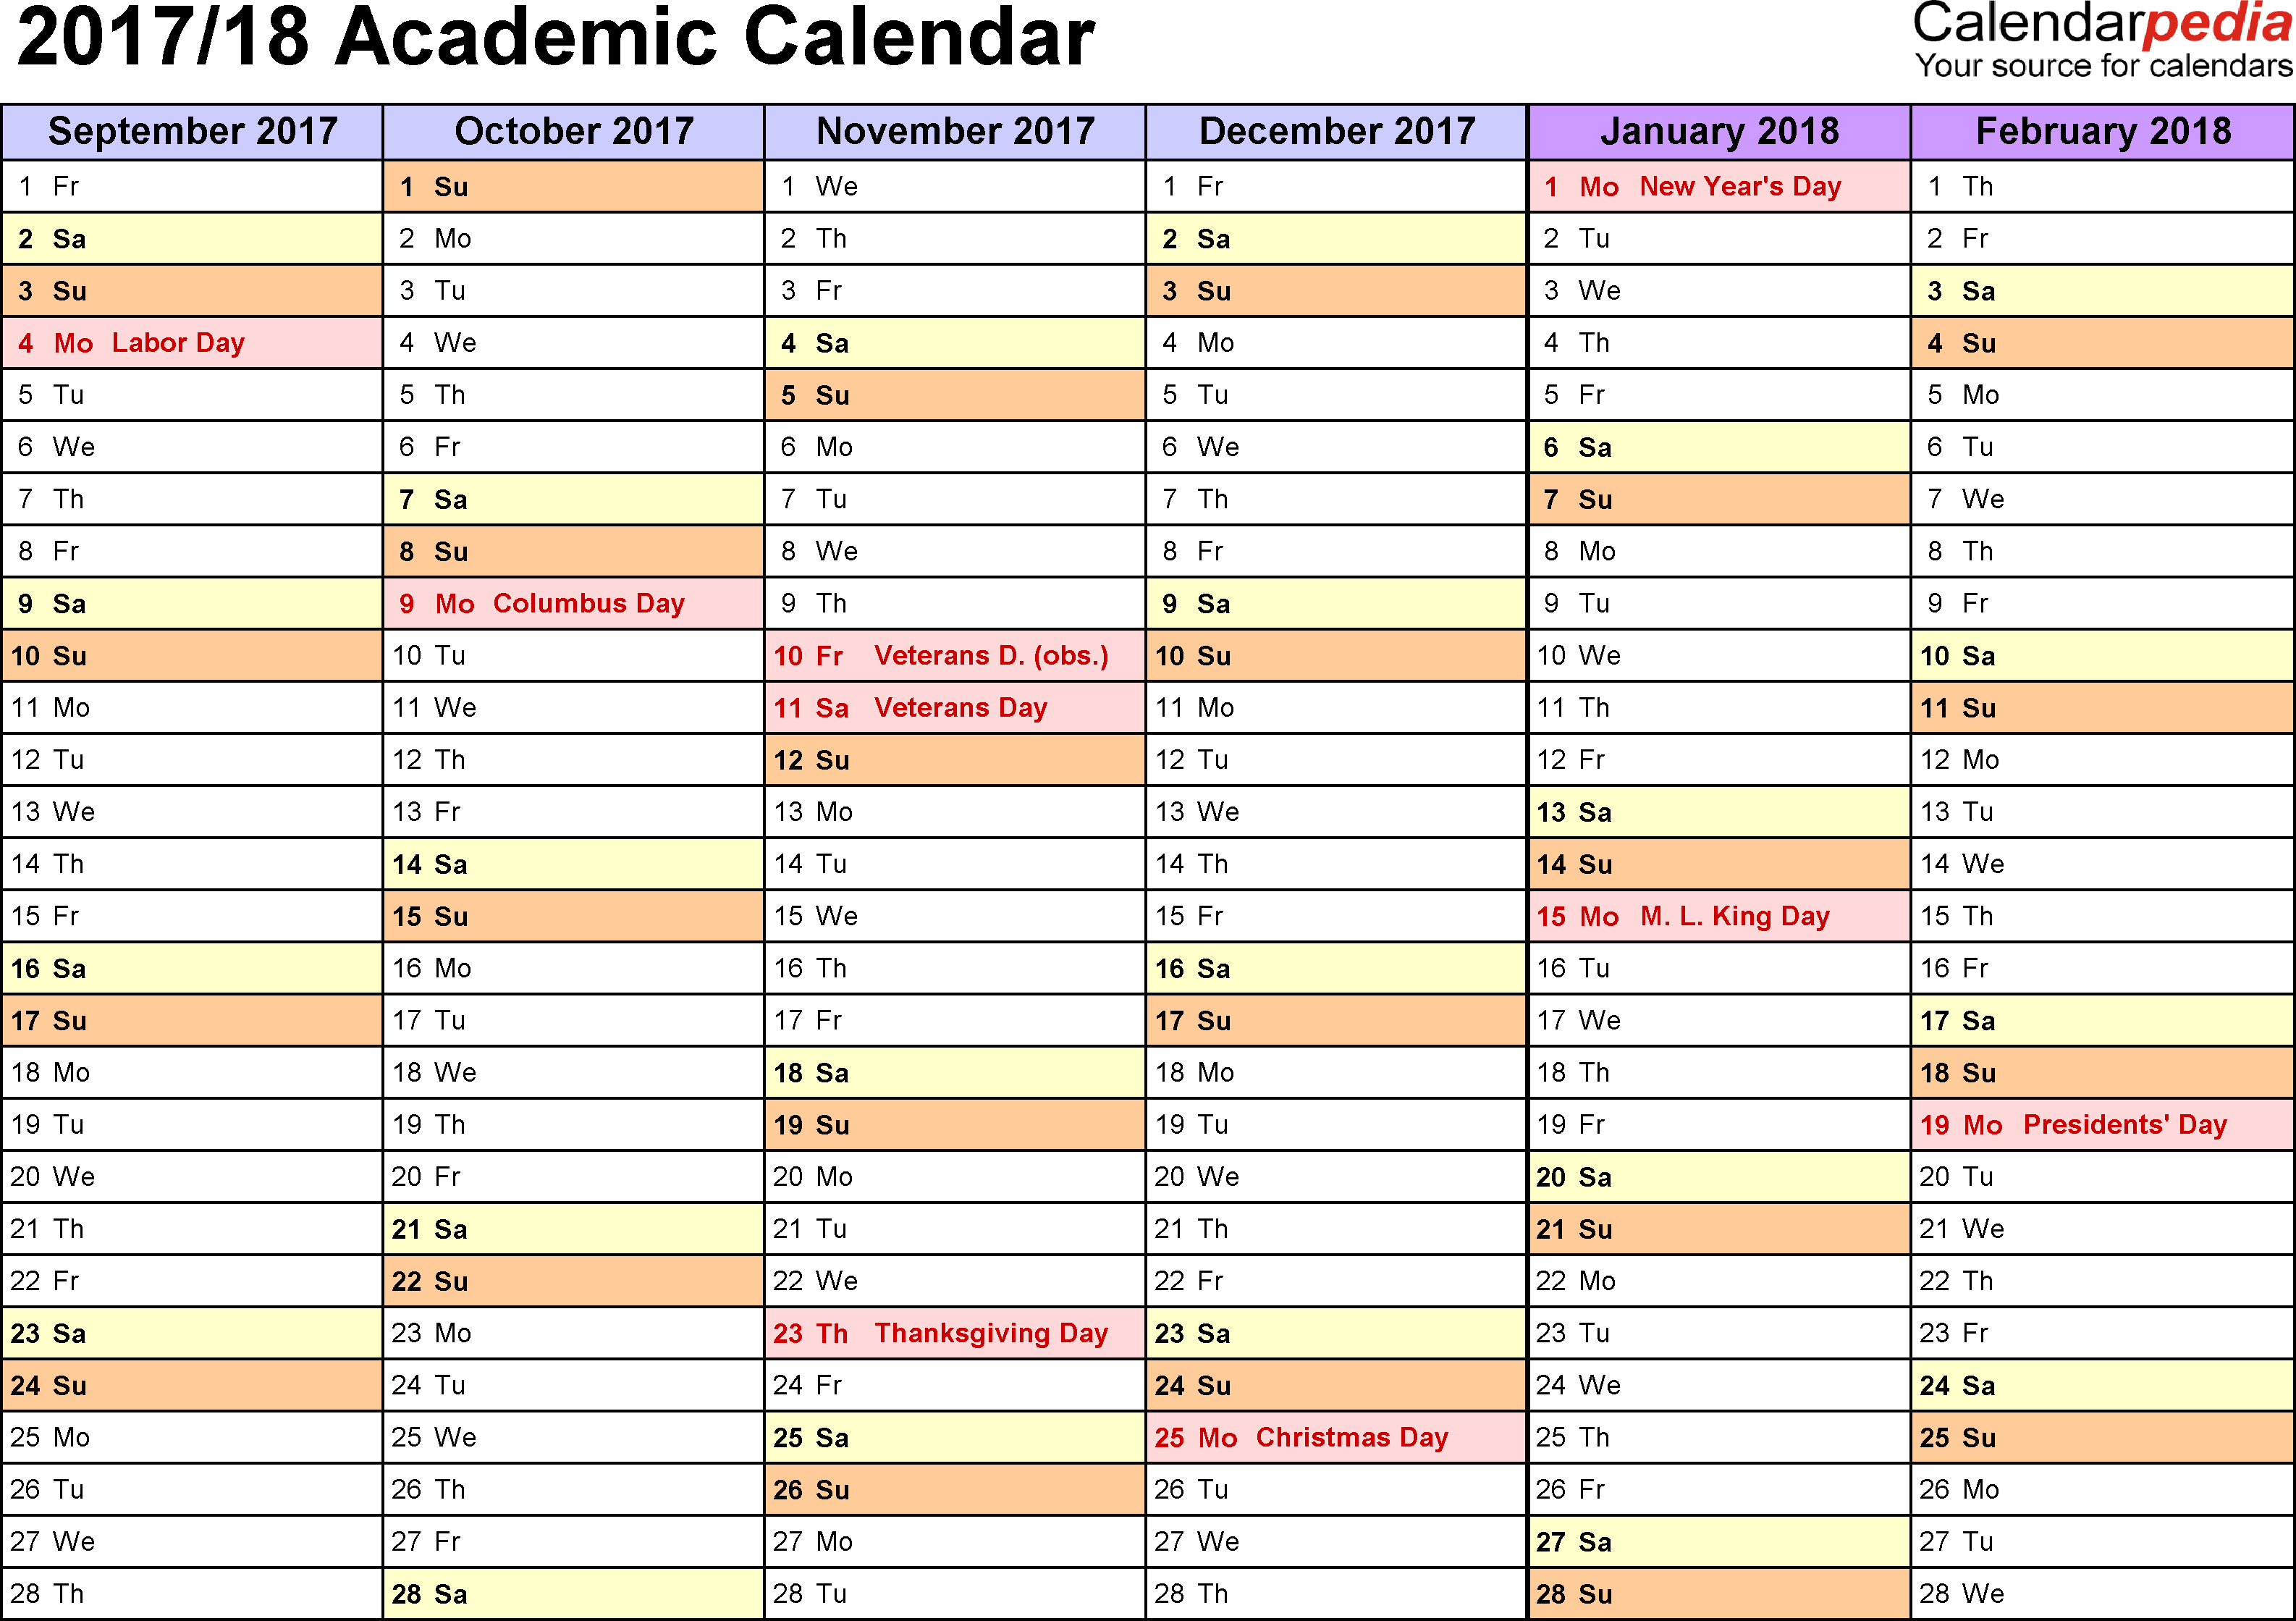 academic calendars 2017 2018 as free printable excel templates